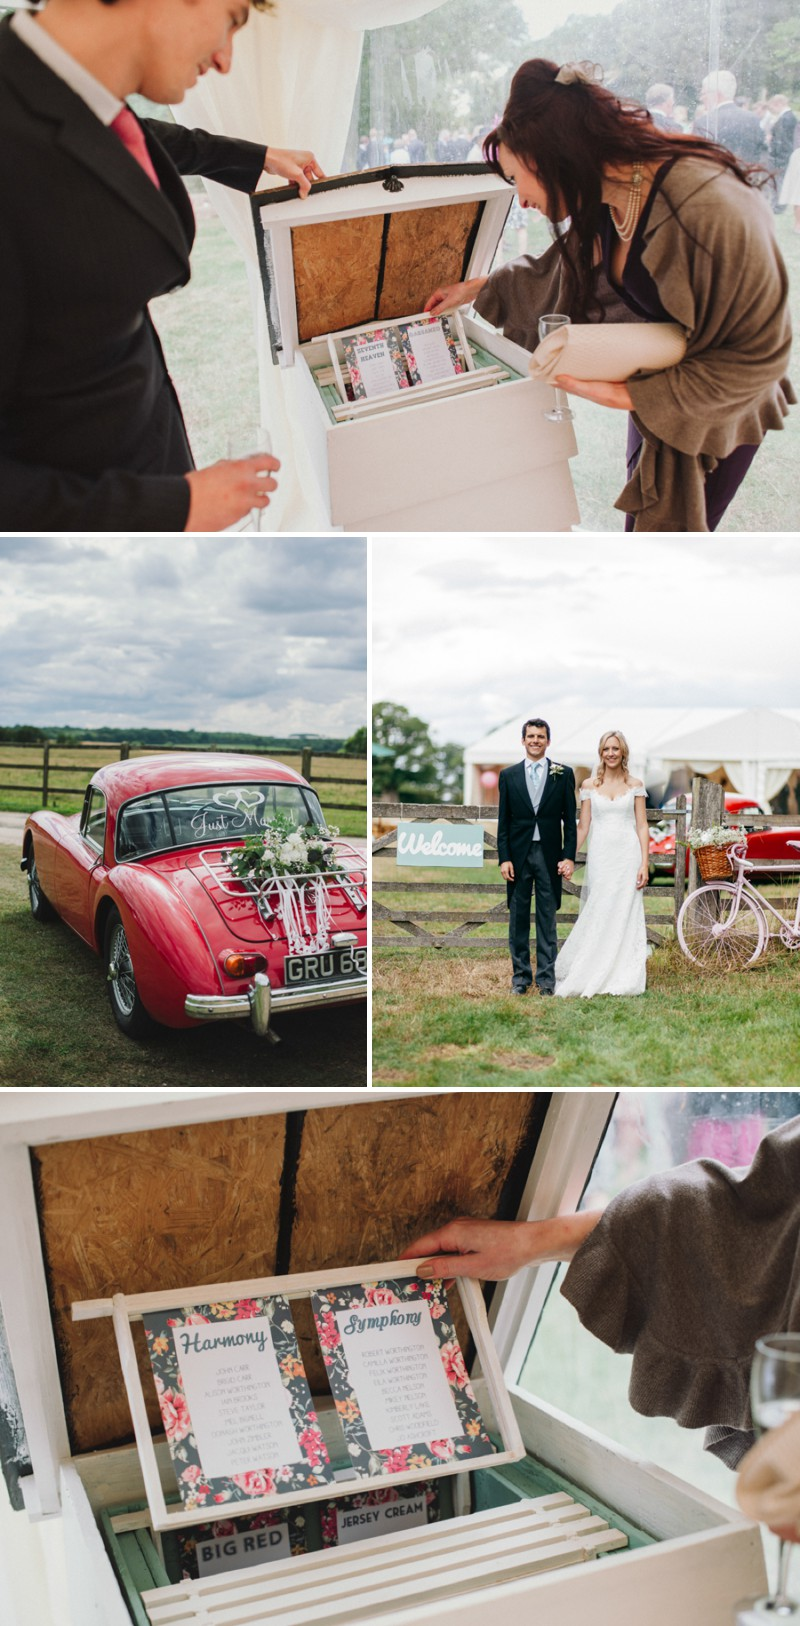 An English Back Garden Wedding With A Romona Keveza Dress And Jimmy Choos And A Pink Rose Bouquet With Mint Bridesmaid Dresses By KRAAN Wedding Photography._0009